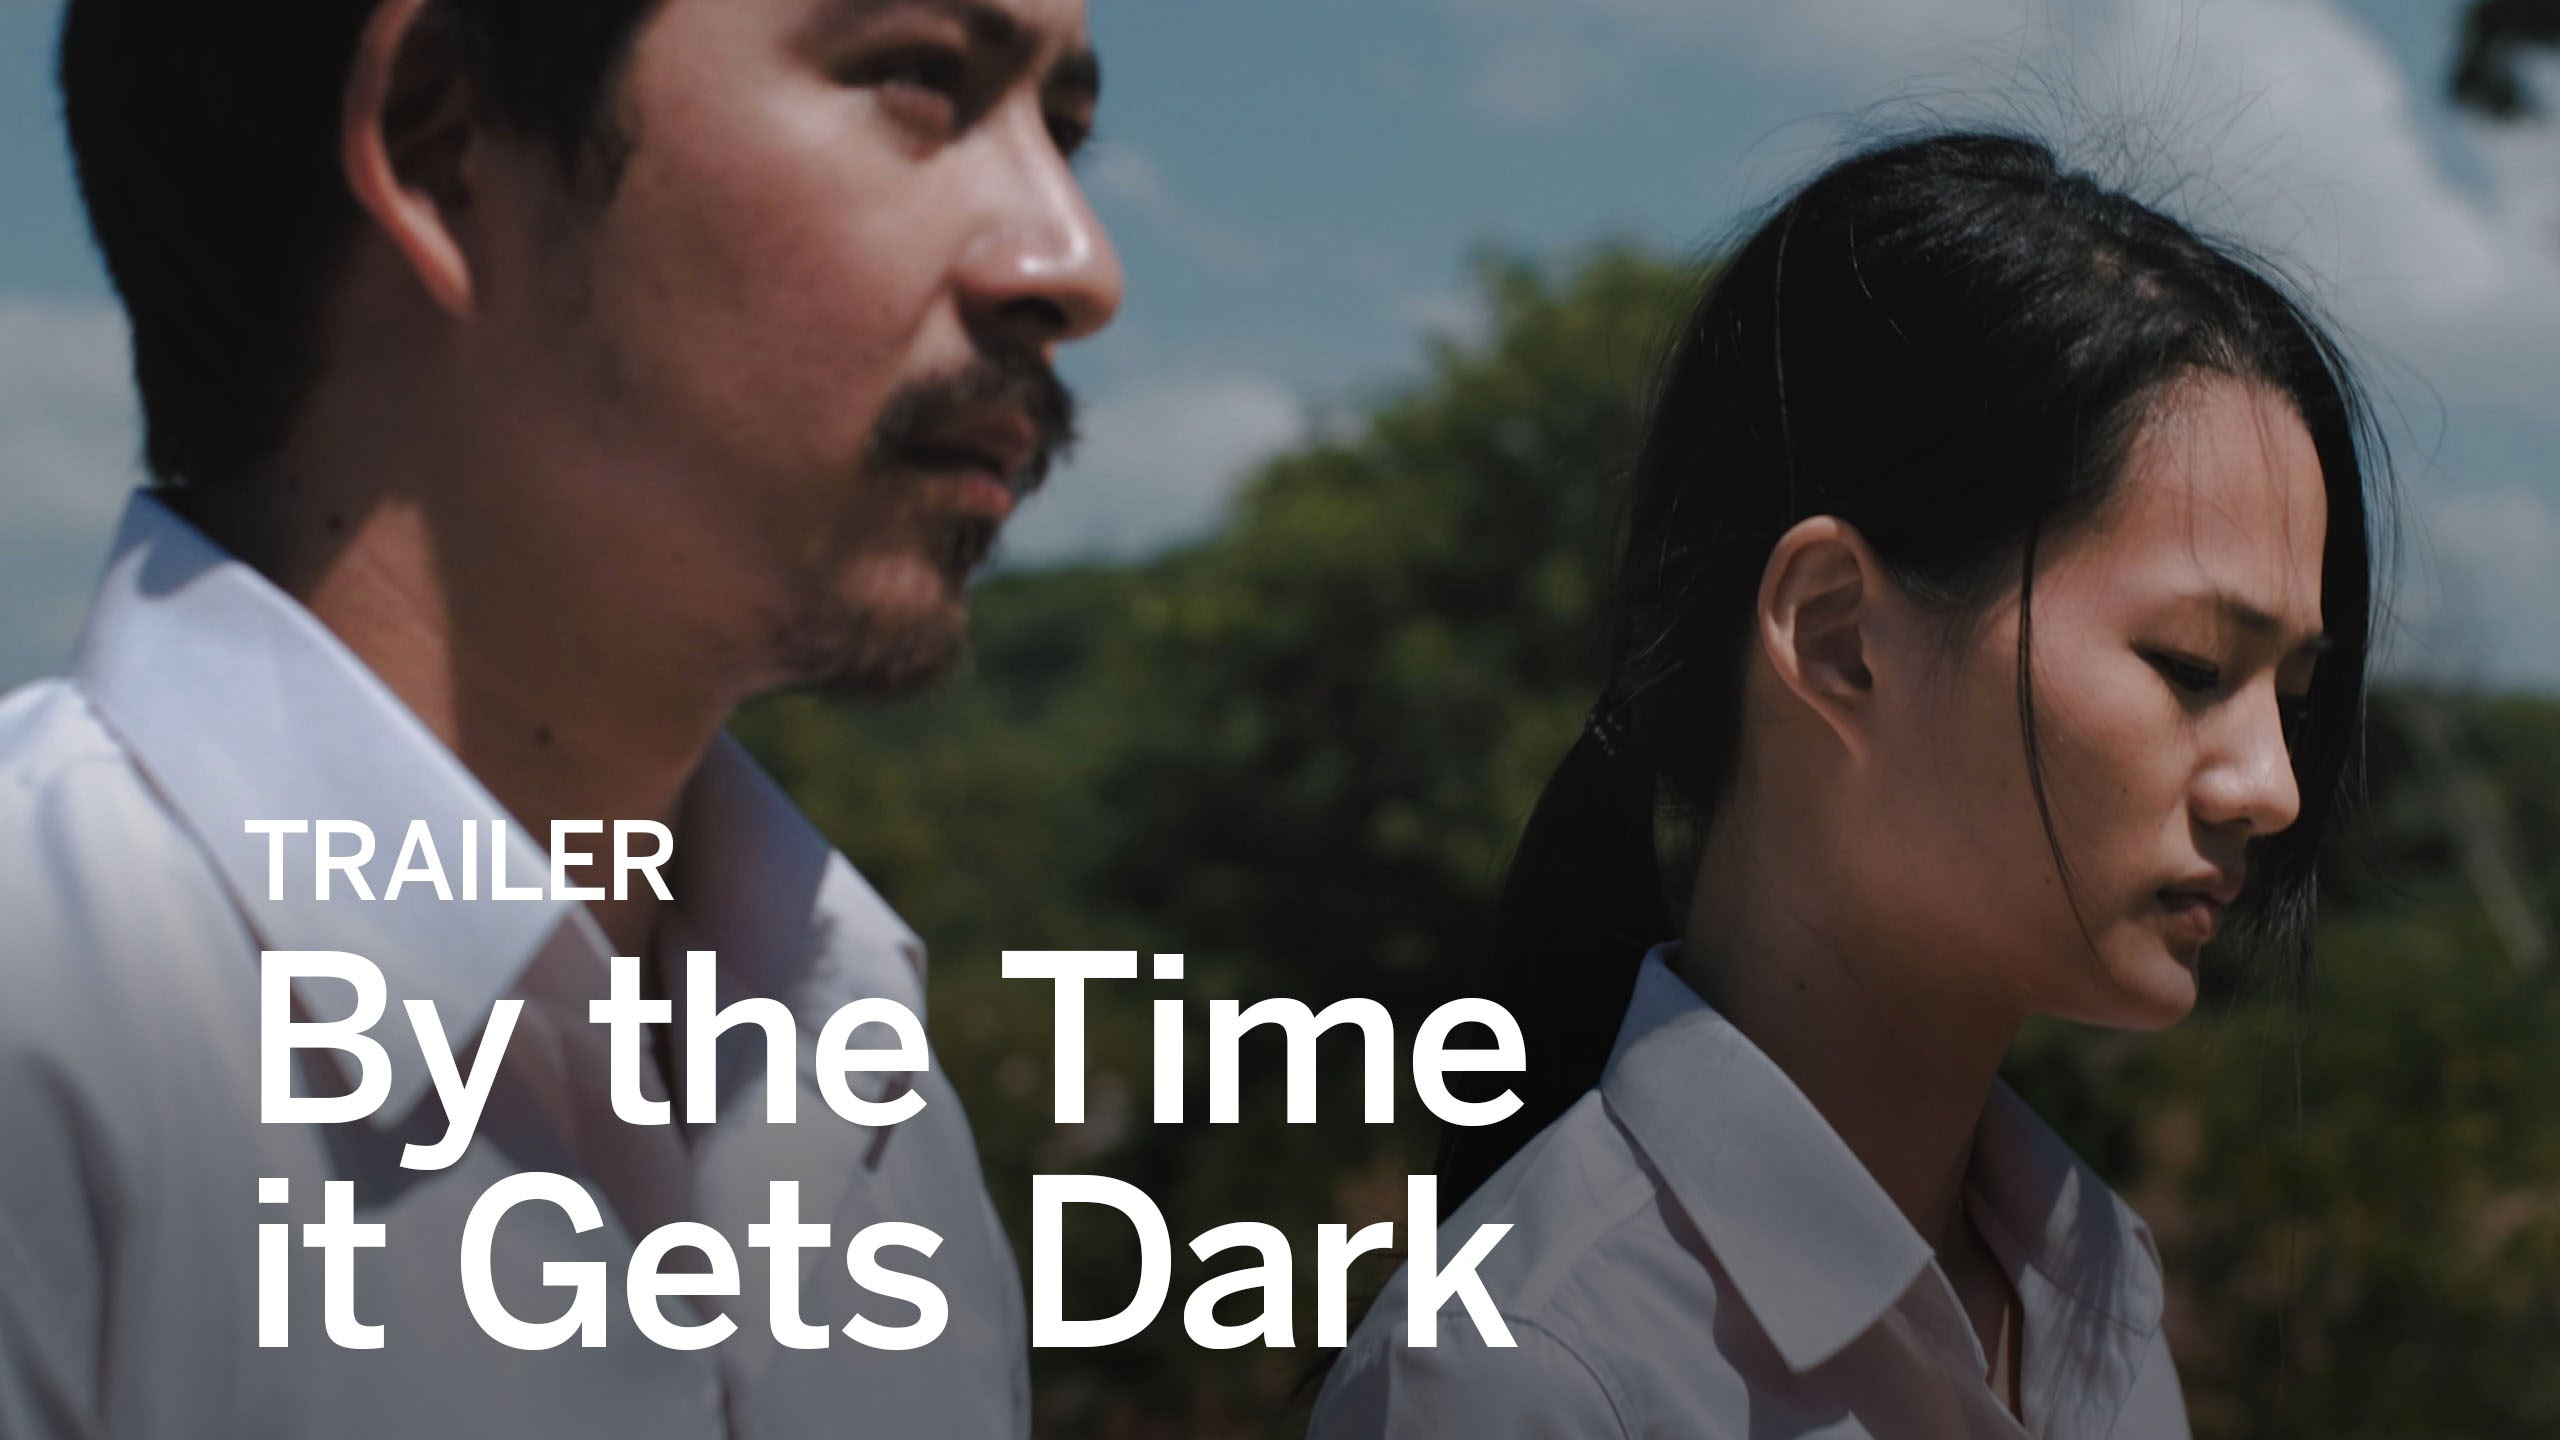 By the Time it Gets Dark Trailer